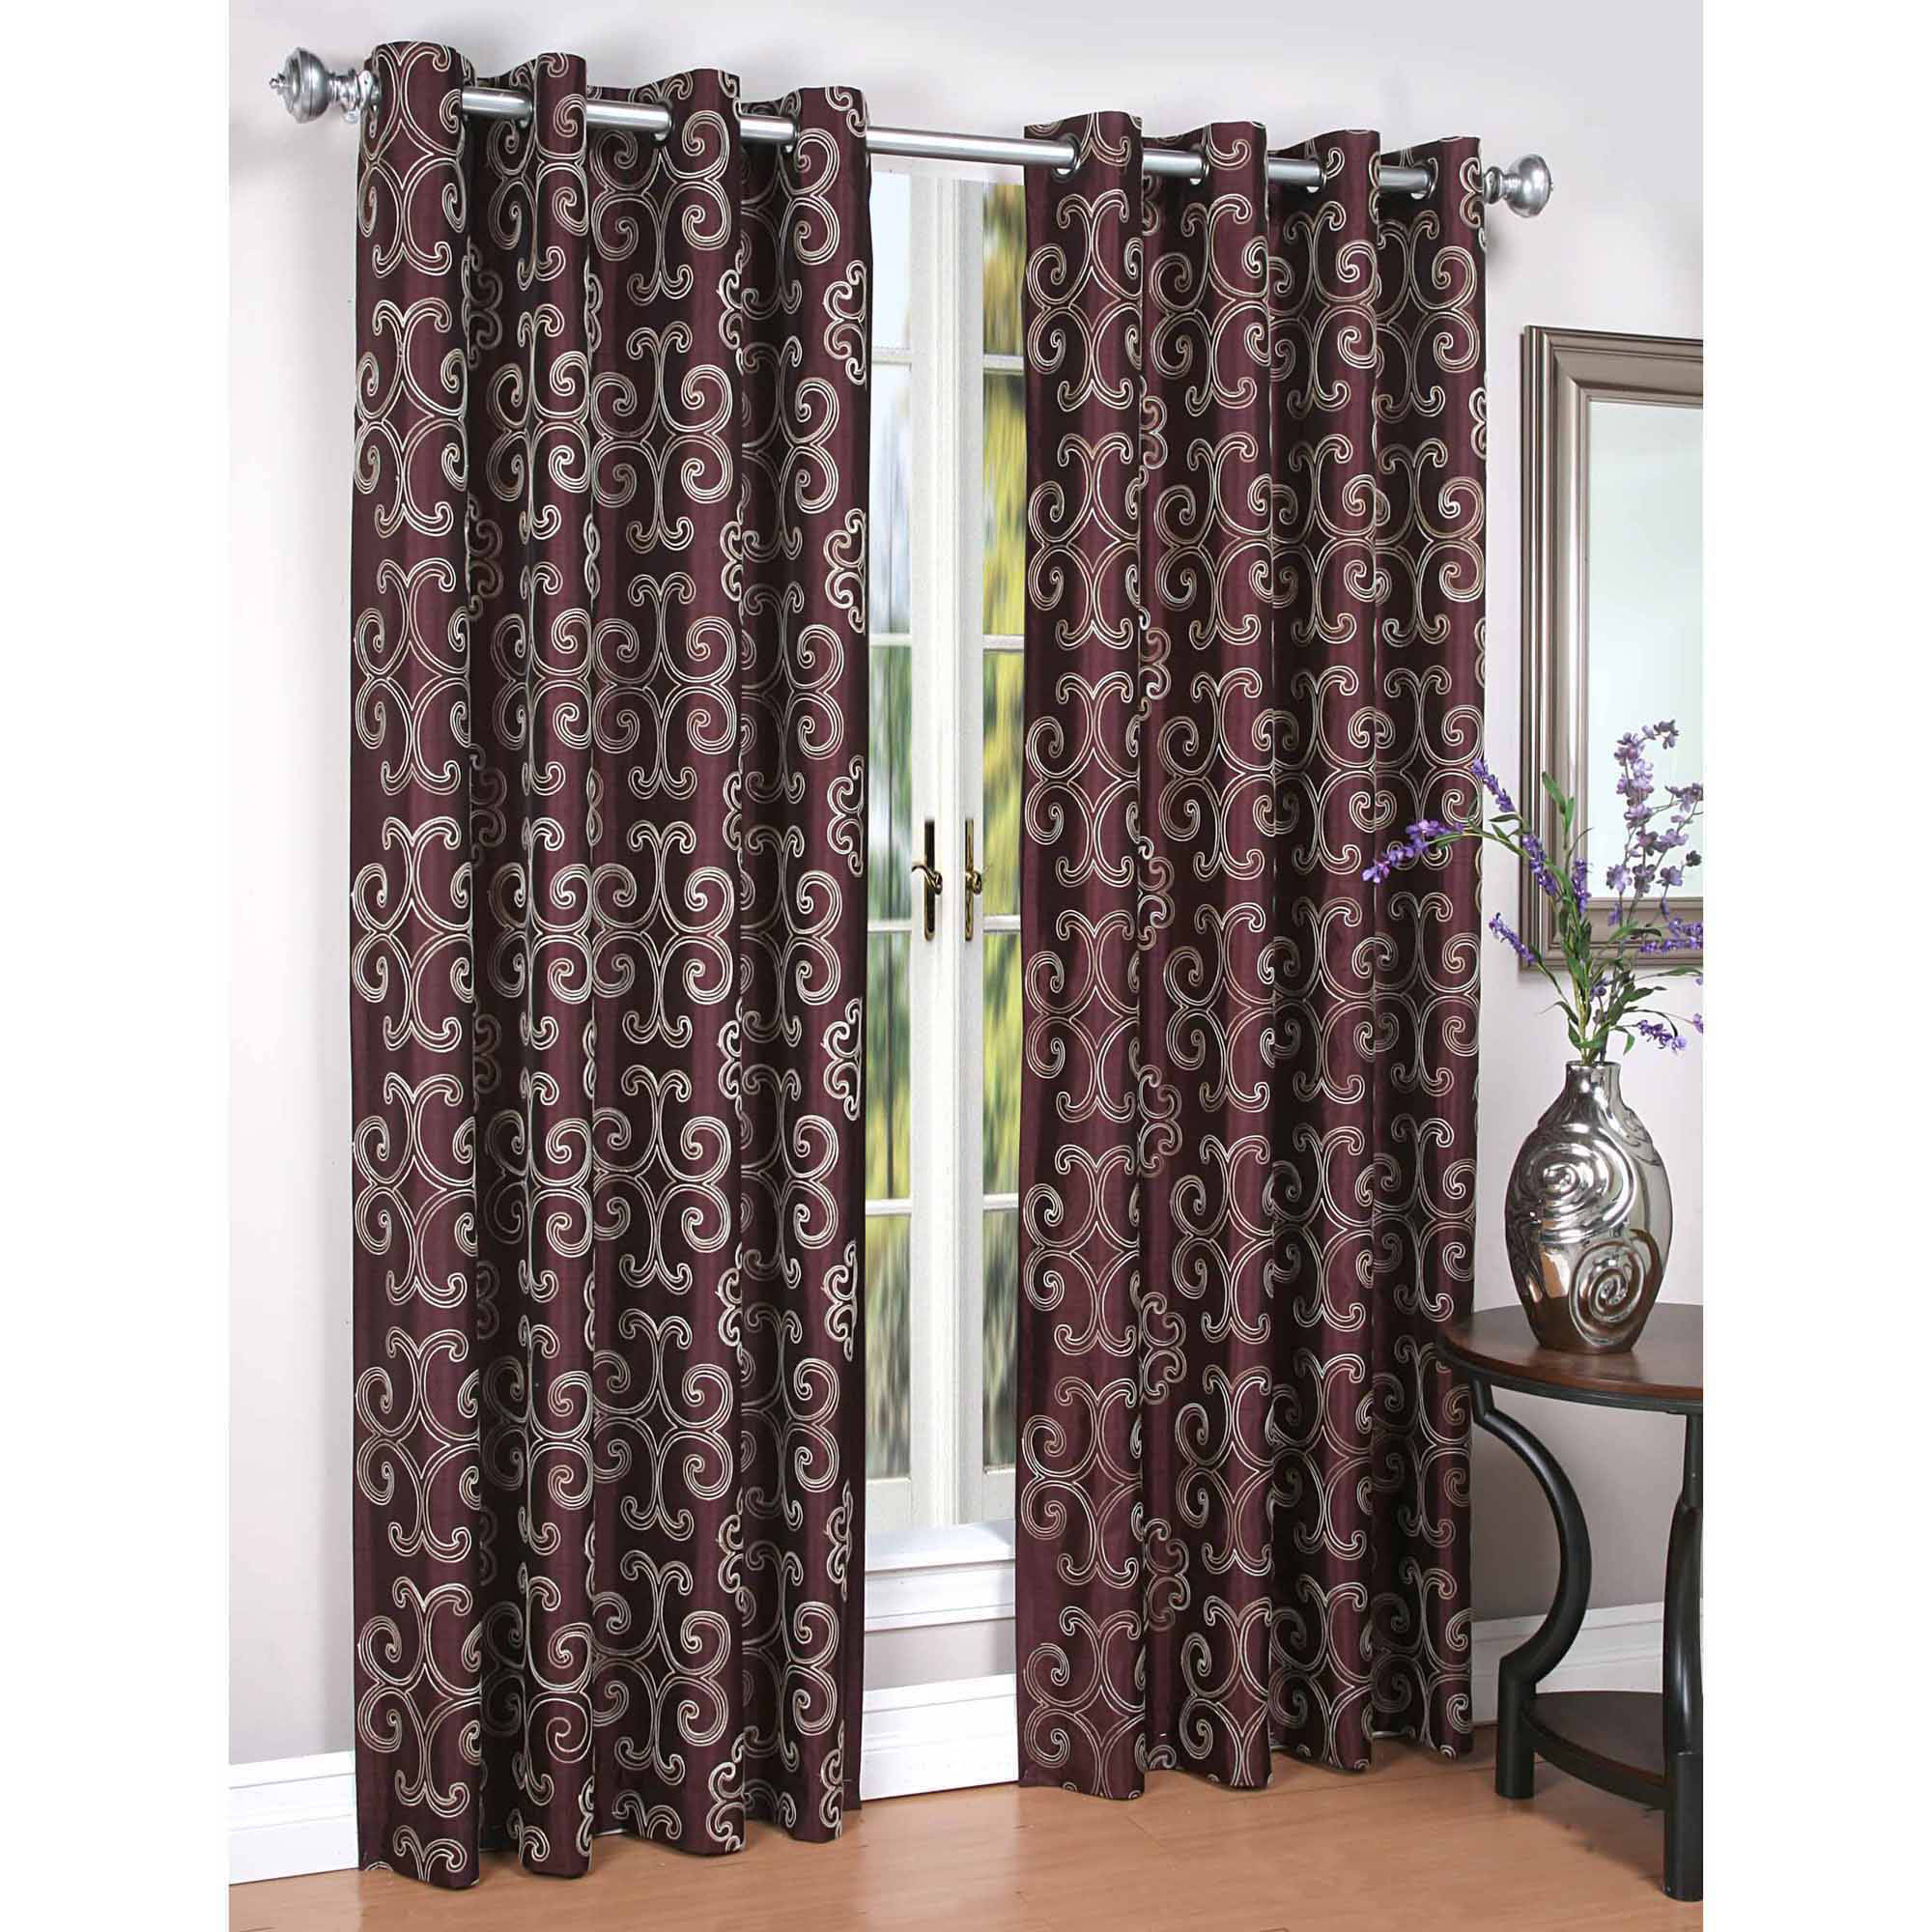 Exclusive Home Curtains 2 Pack Raw Silk Thermal Grommet Top Curtain Panels Throughout Most Up To Date Raw Silk Thermal Insulated Grommet Top Curtain Panel Pairs (Gallery 19 of 20)